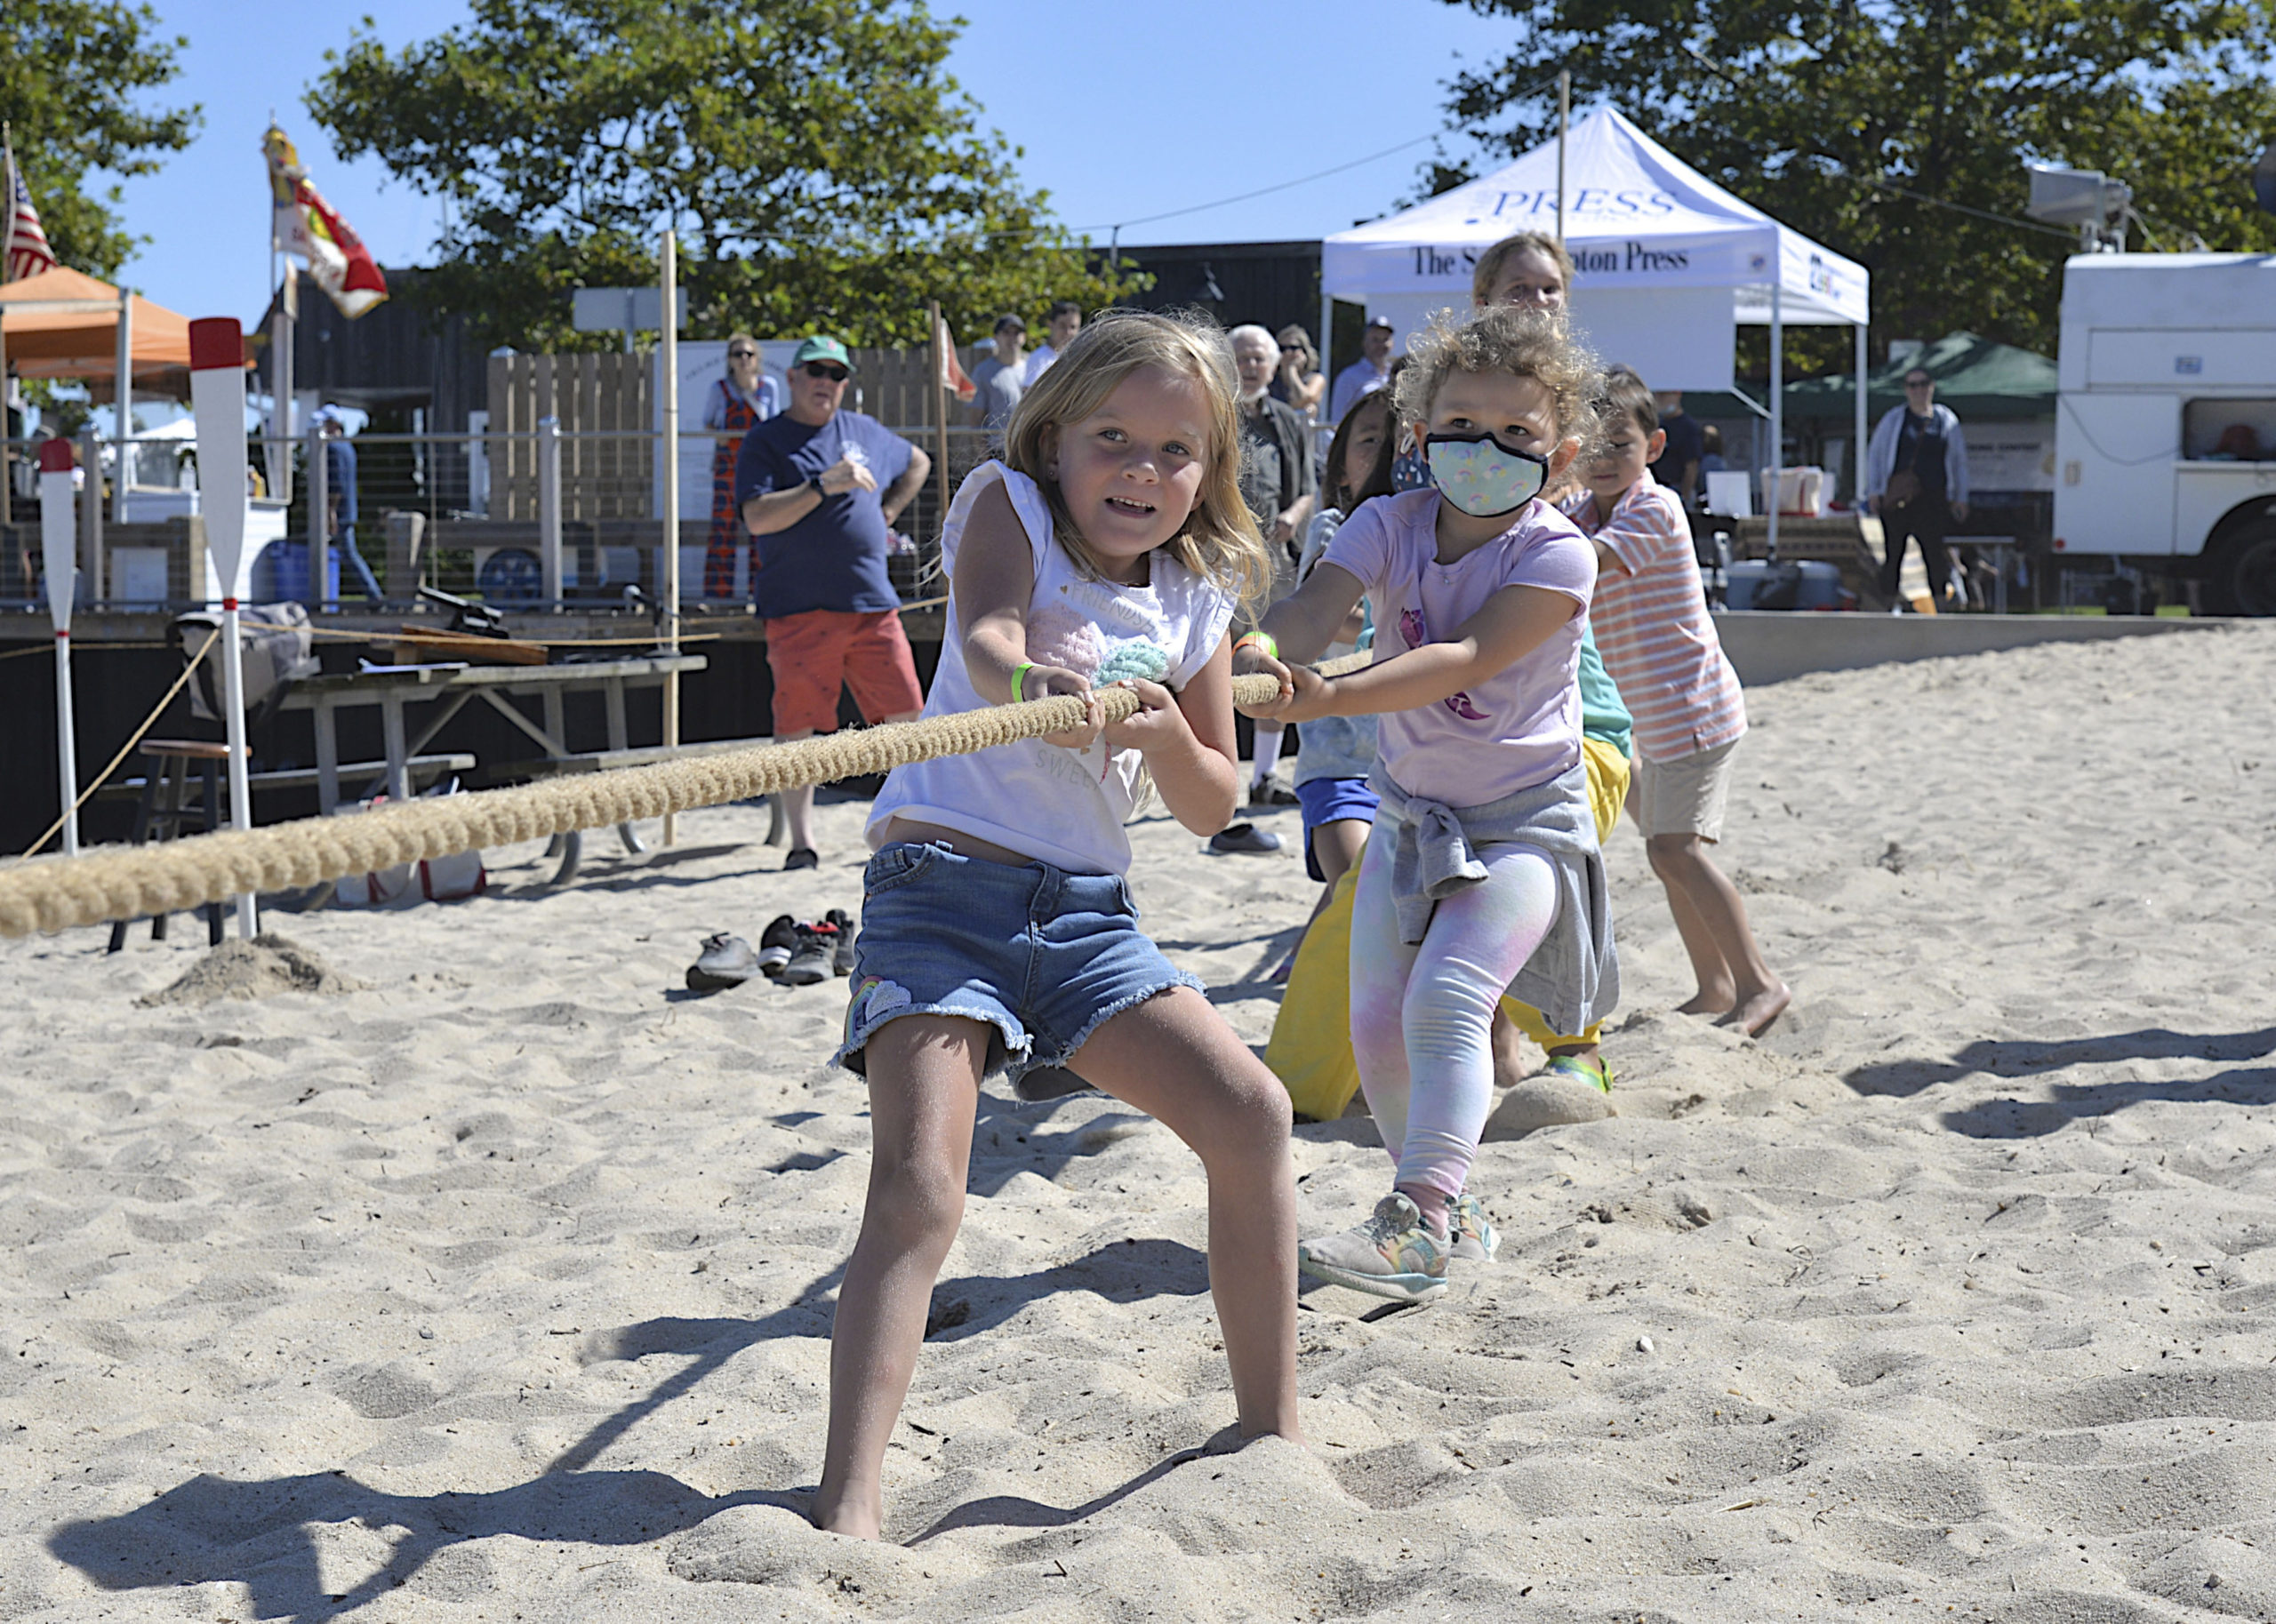 Kids during the tug--of-war at HarborFest on Saturday. KYRIL BROMLEY